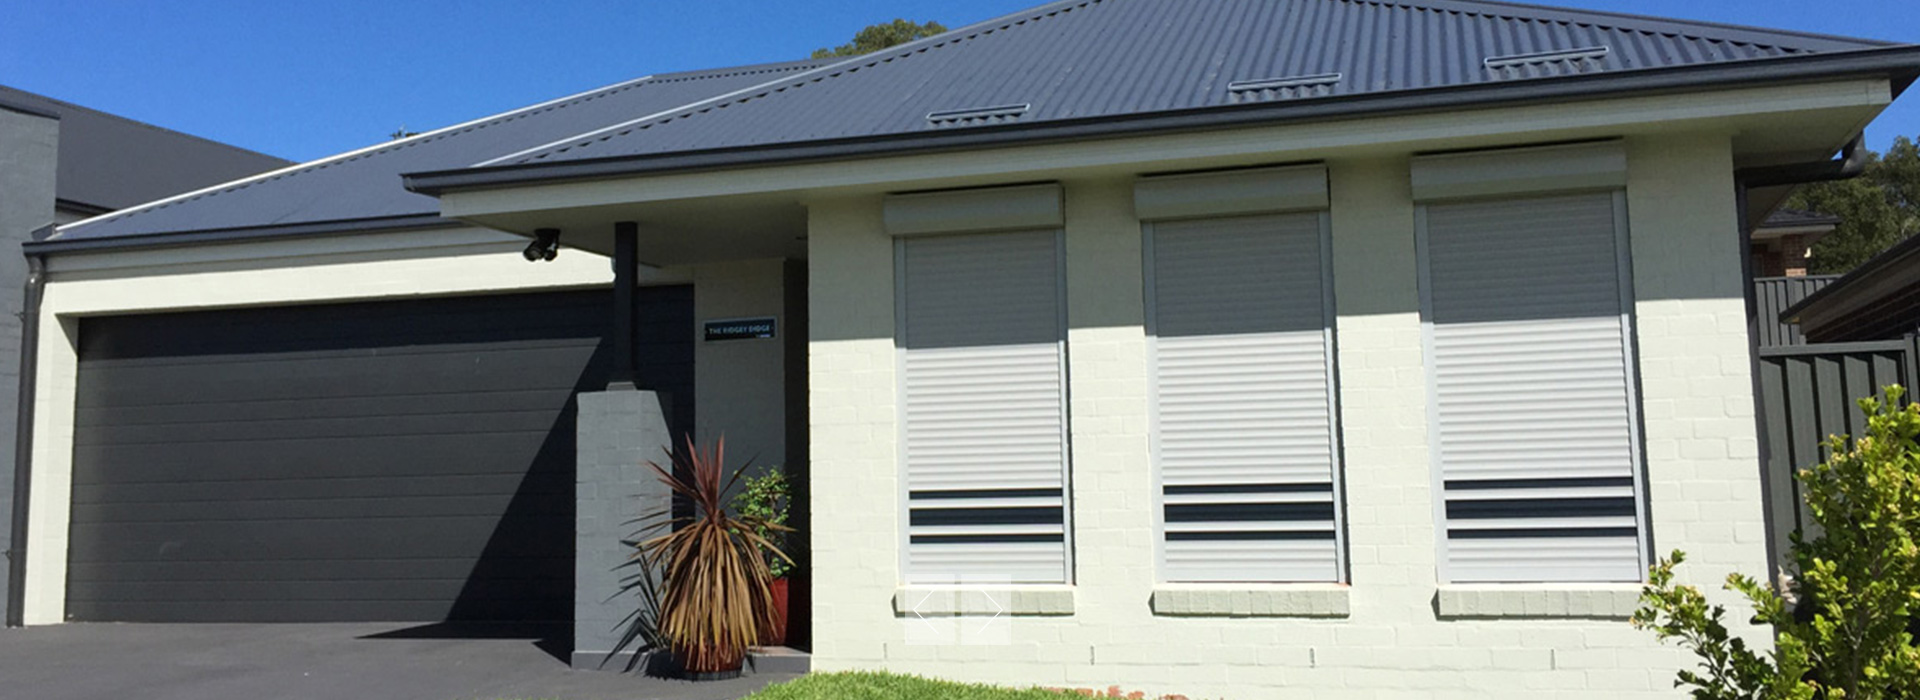 Bushfire Rated Roller Shutters Lane Cove